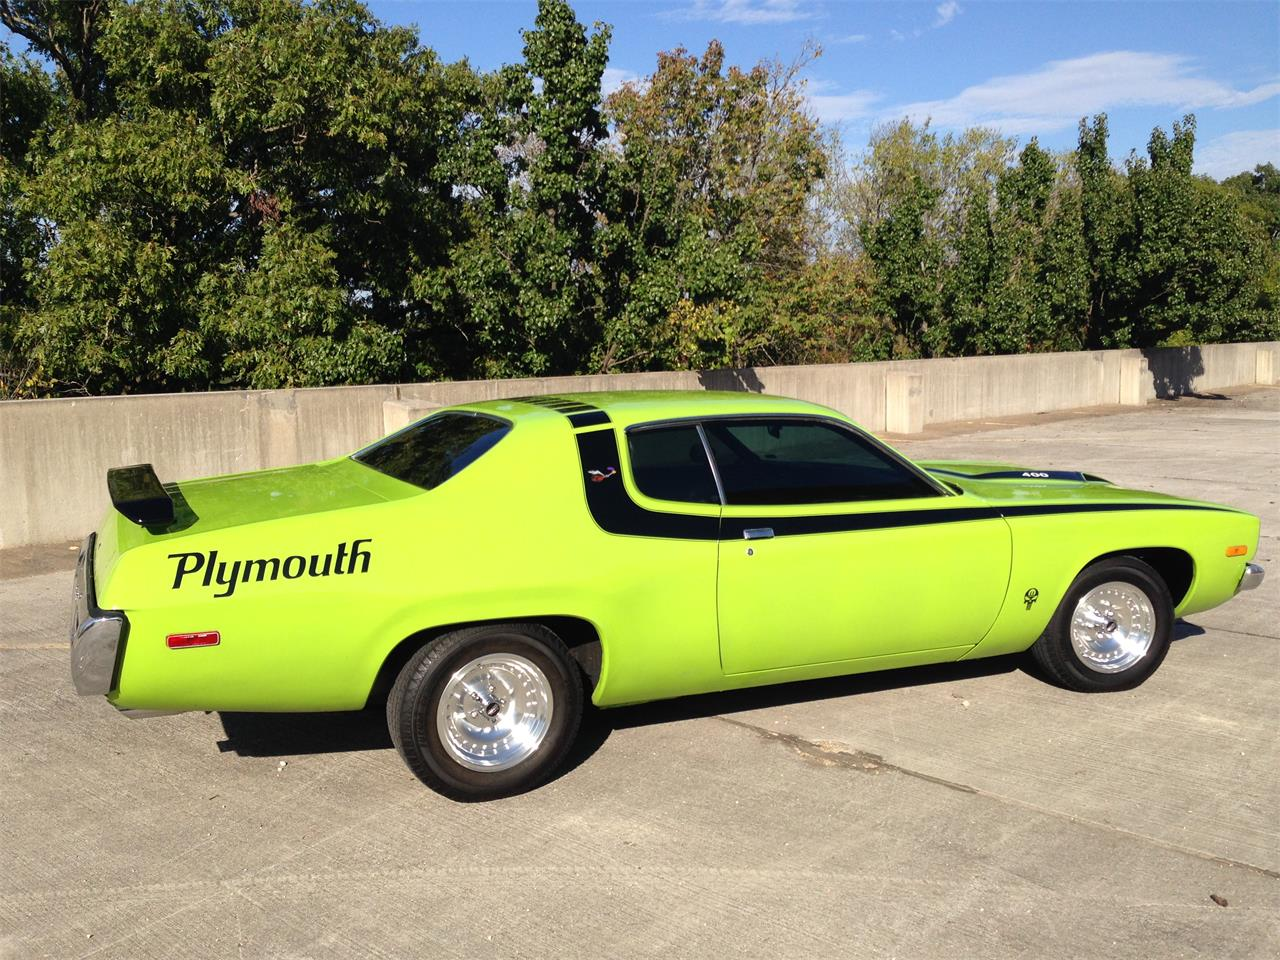 For Sale: 1973 Plymouth Road Runner in Branson, Missouri